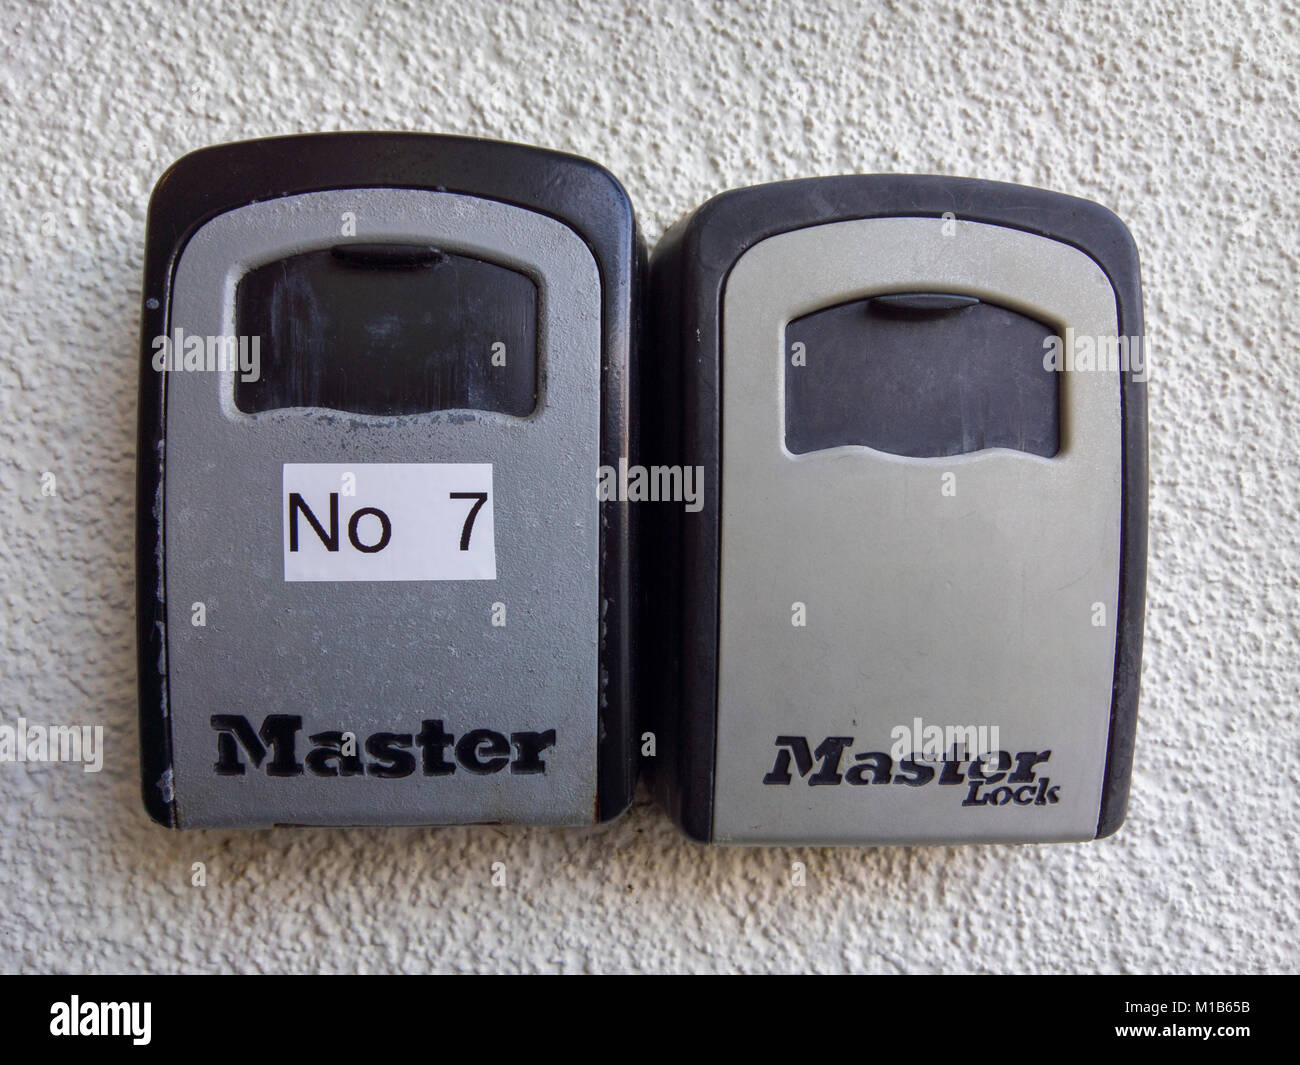 A pair of Master Lock combination key safes outside apartments. - Stock Image